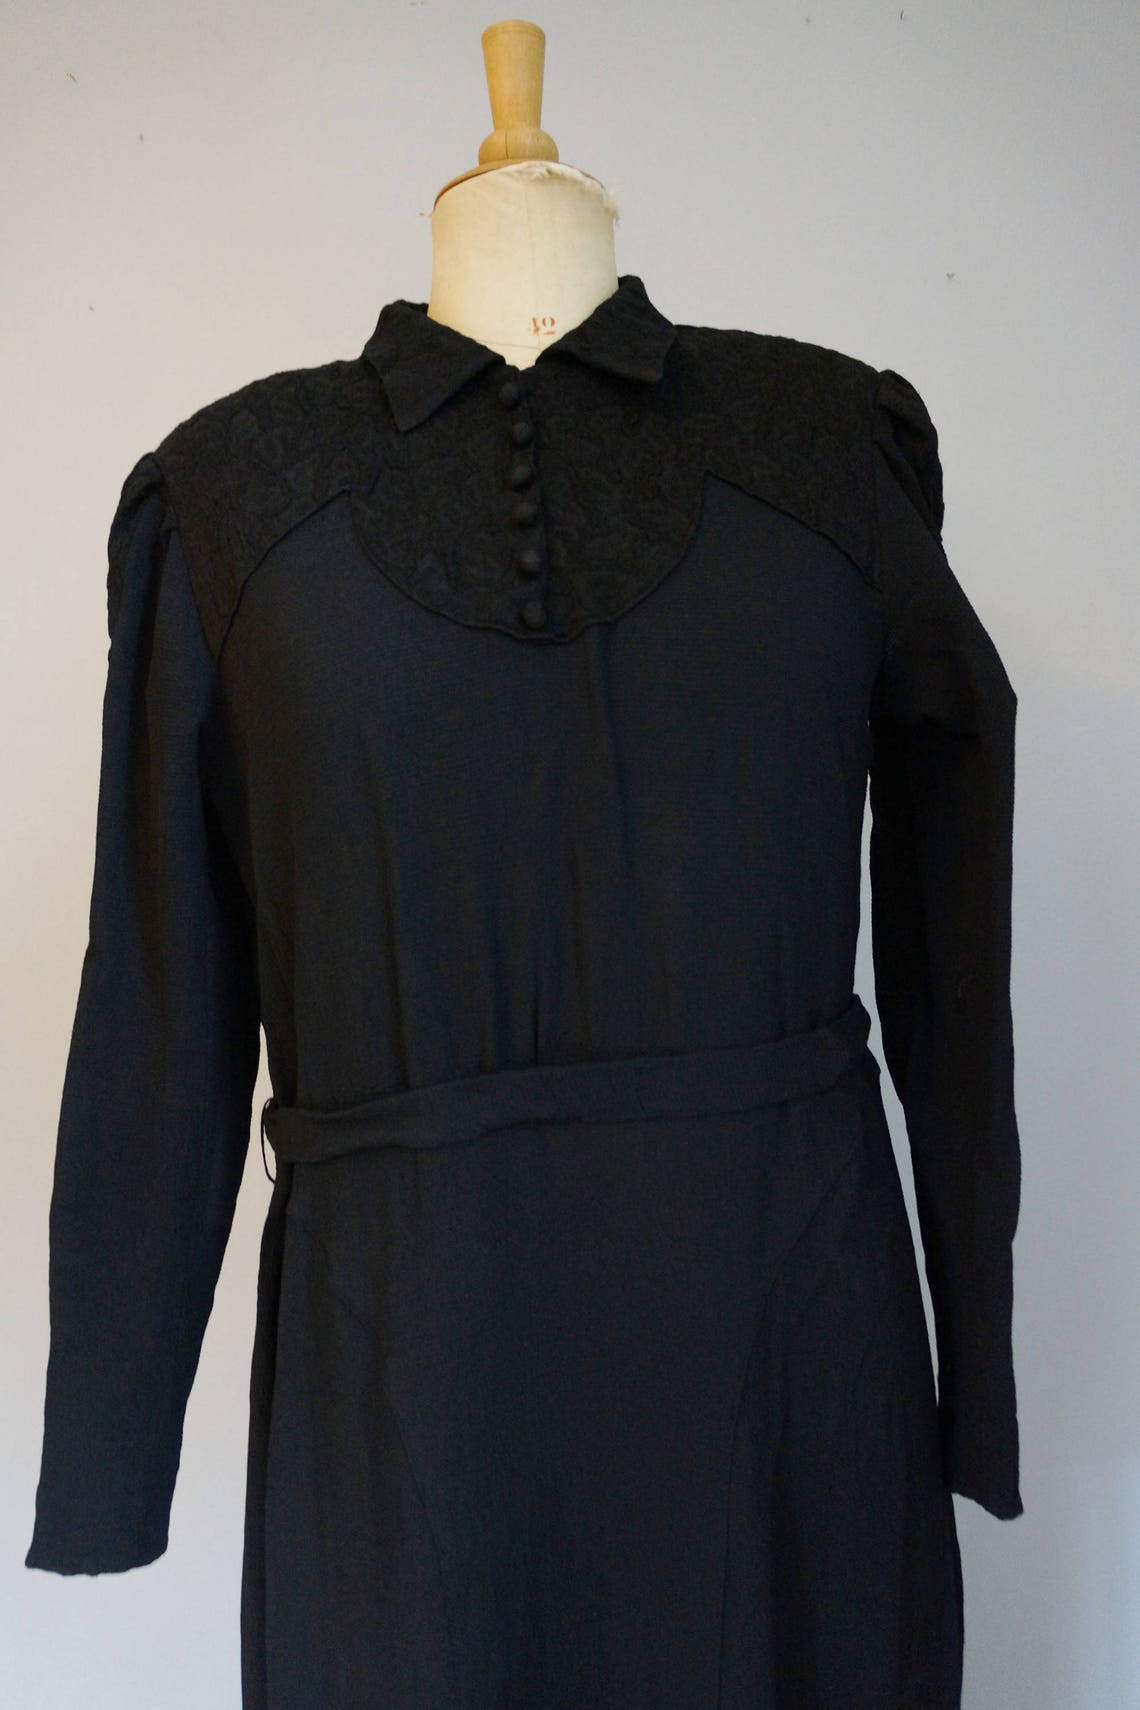 1930s Black Dress with Lace